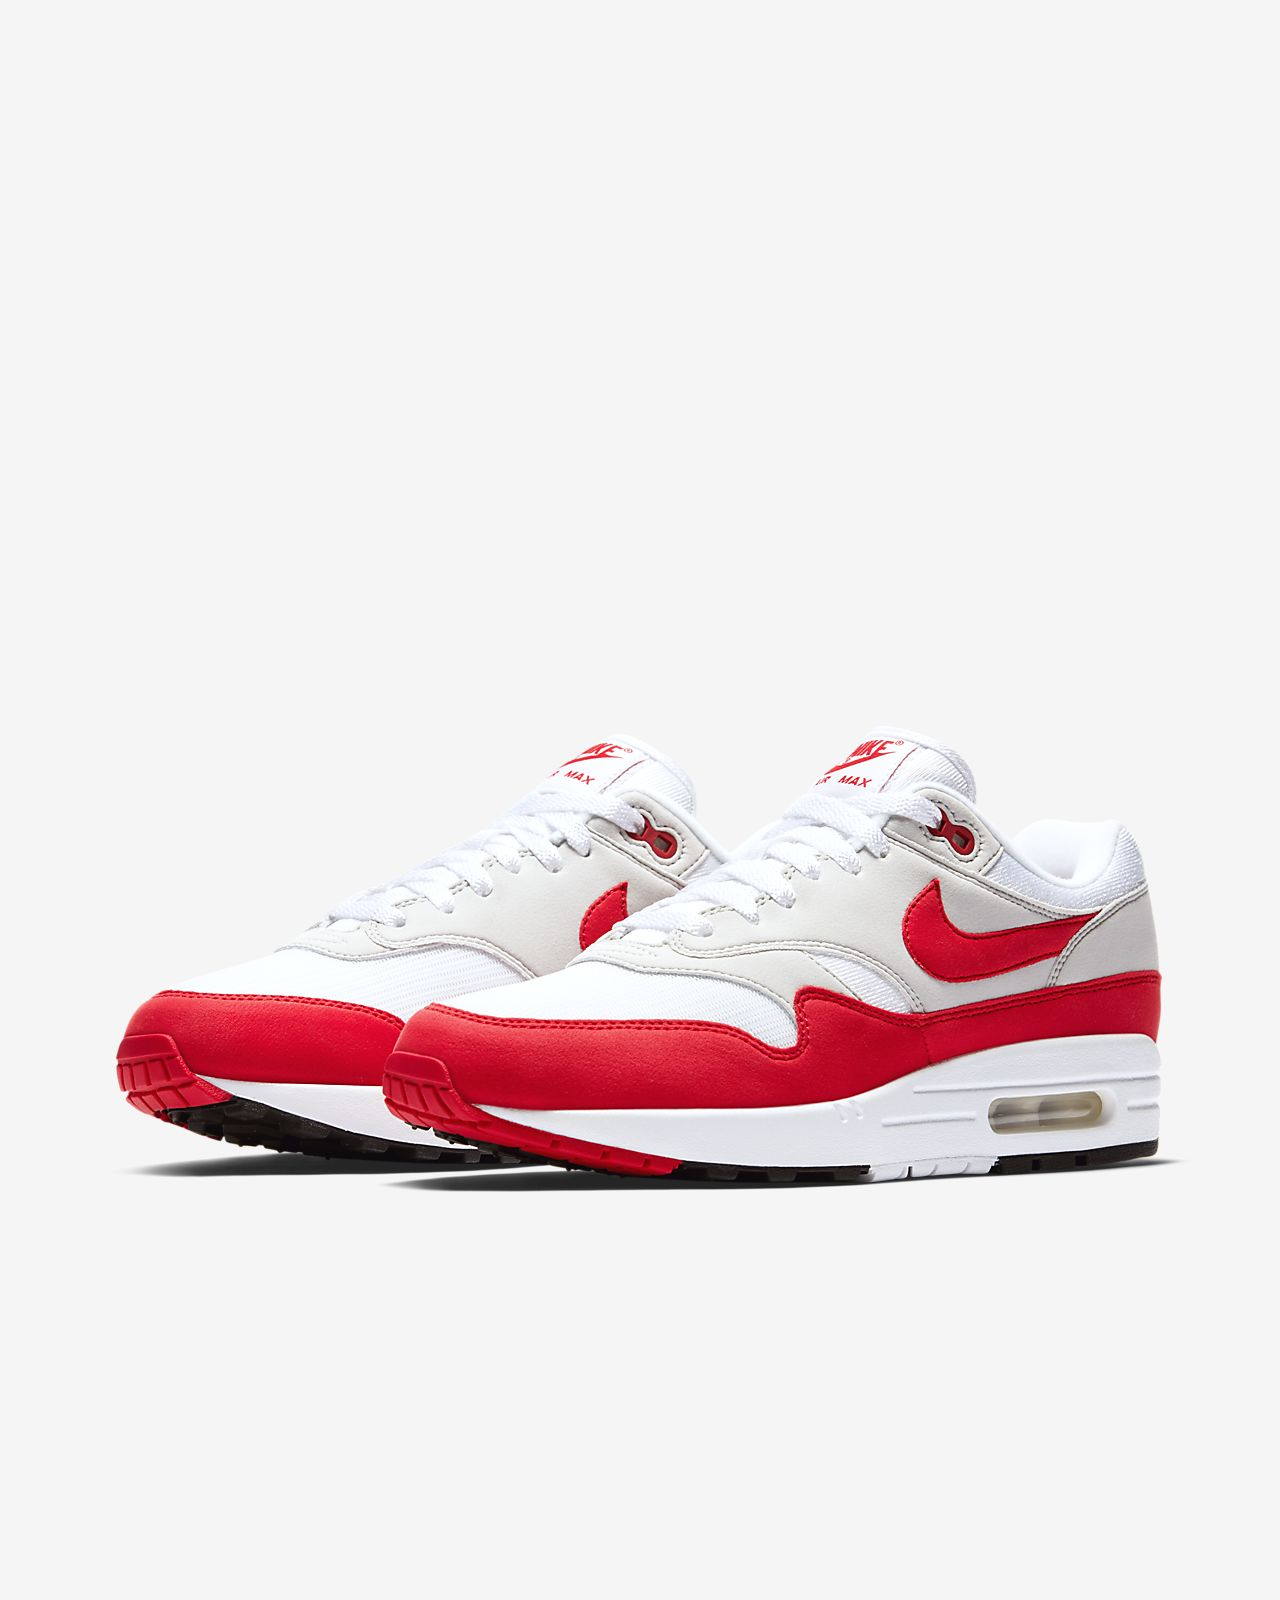 nike air max 1 red anniversary nz